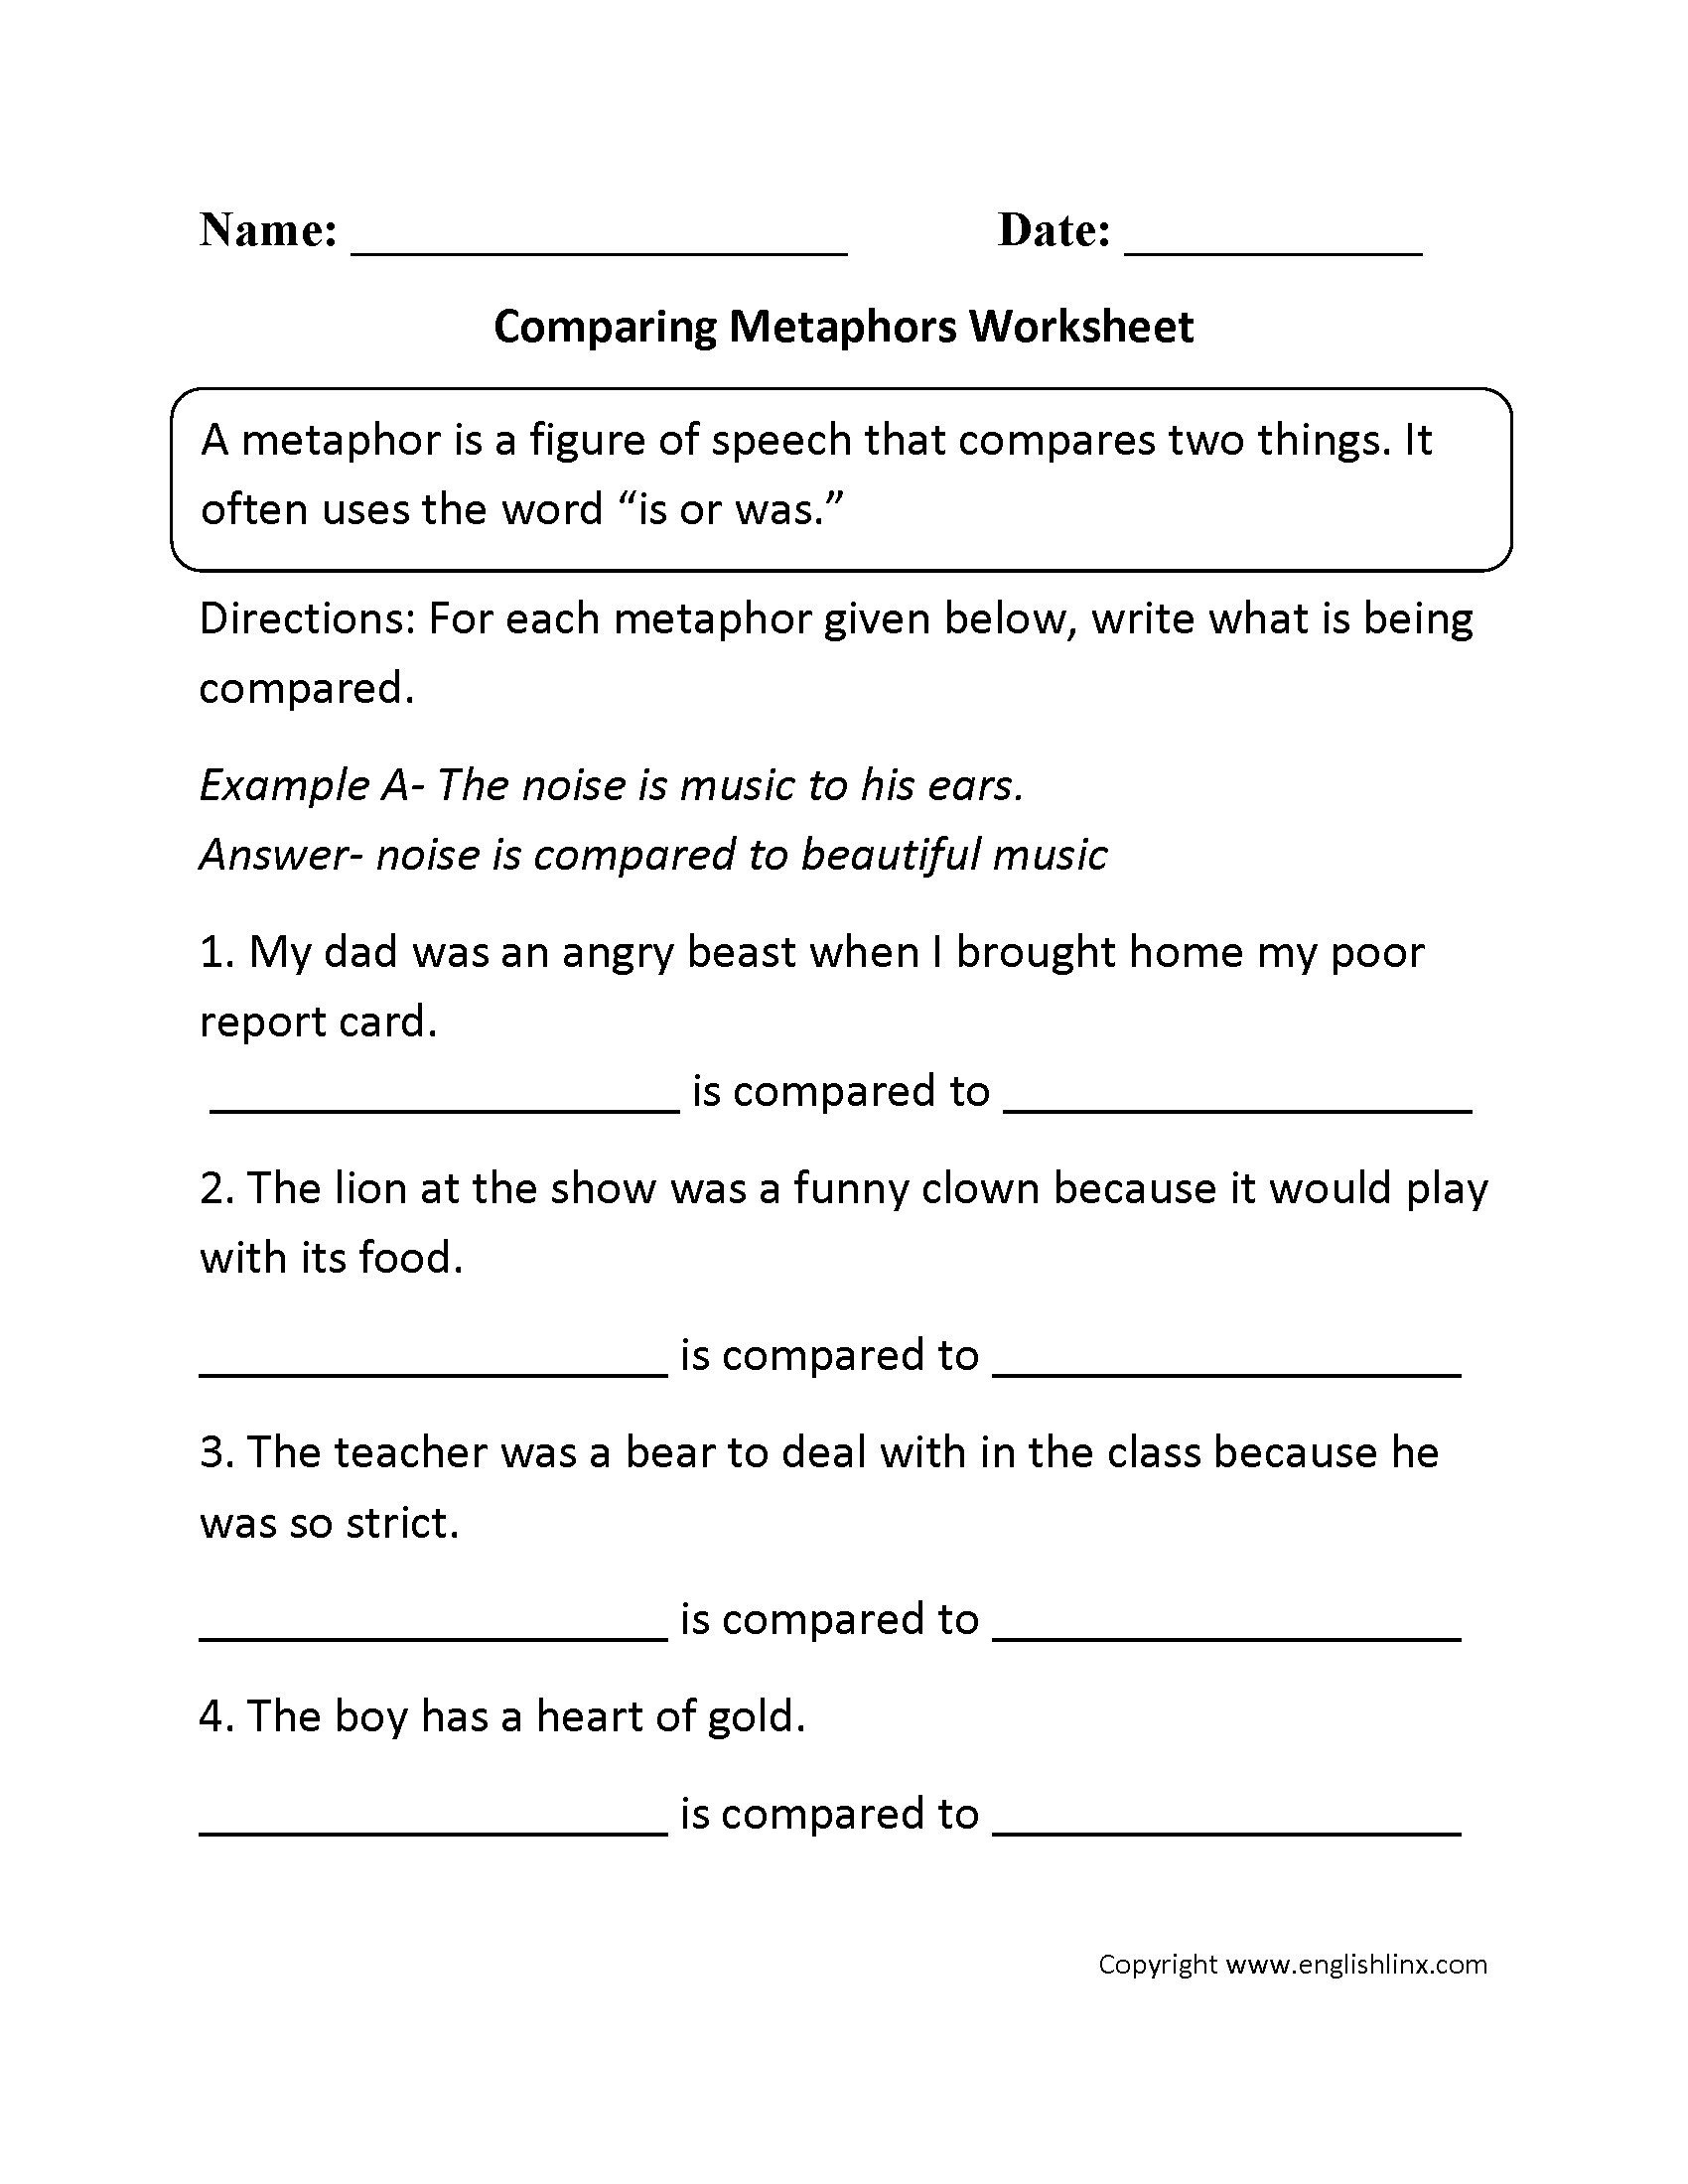 worksheet What Is A Metaphor Math Worksheet englishlinx com metaphors worksheets comparing worksheet